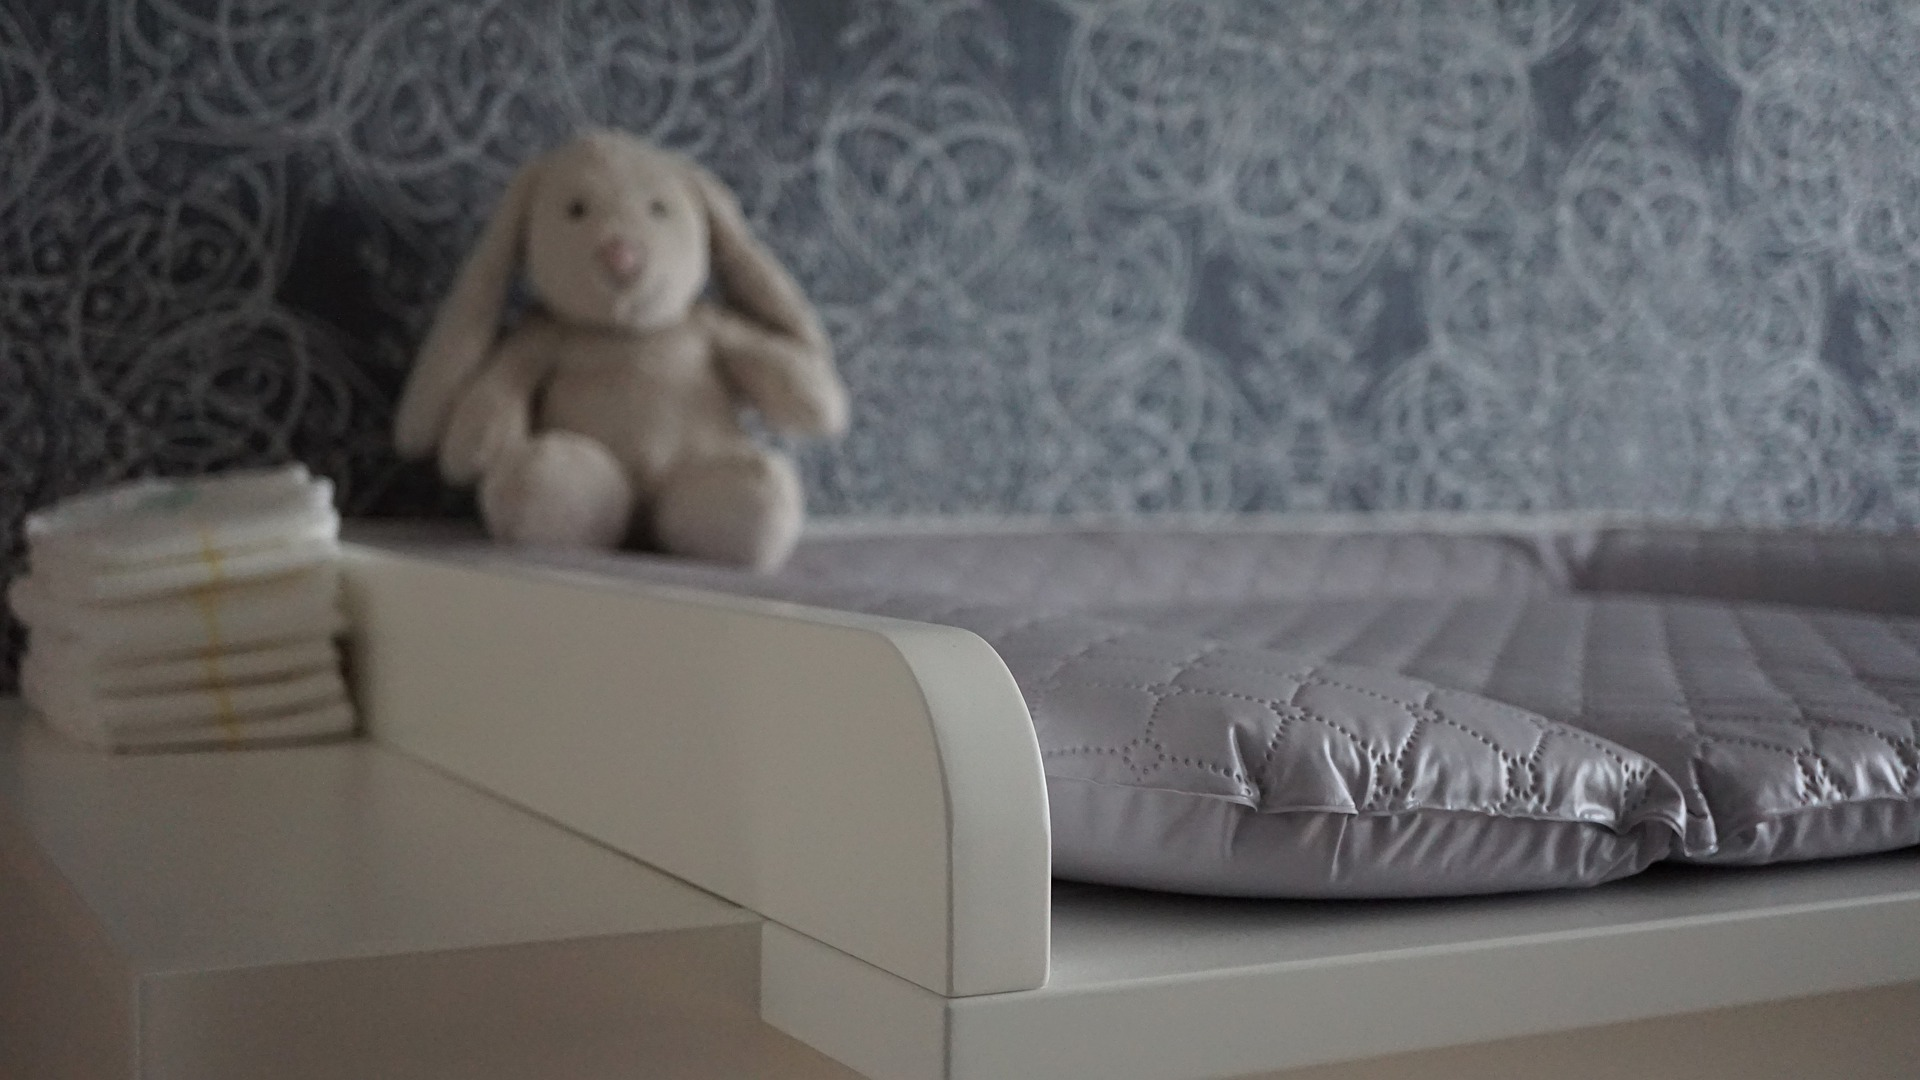 baby-changing-chest-of-drawers-4518766_1920